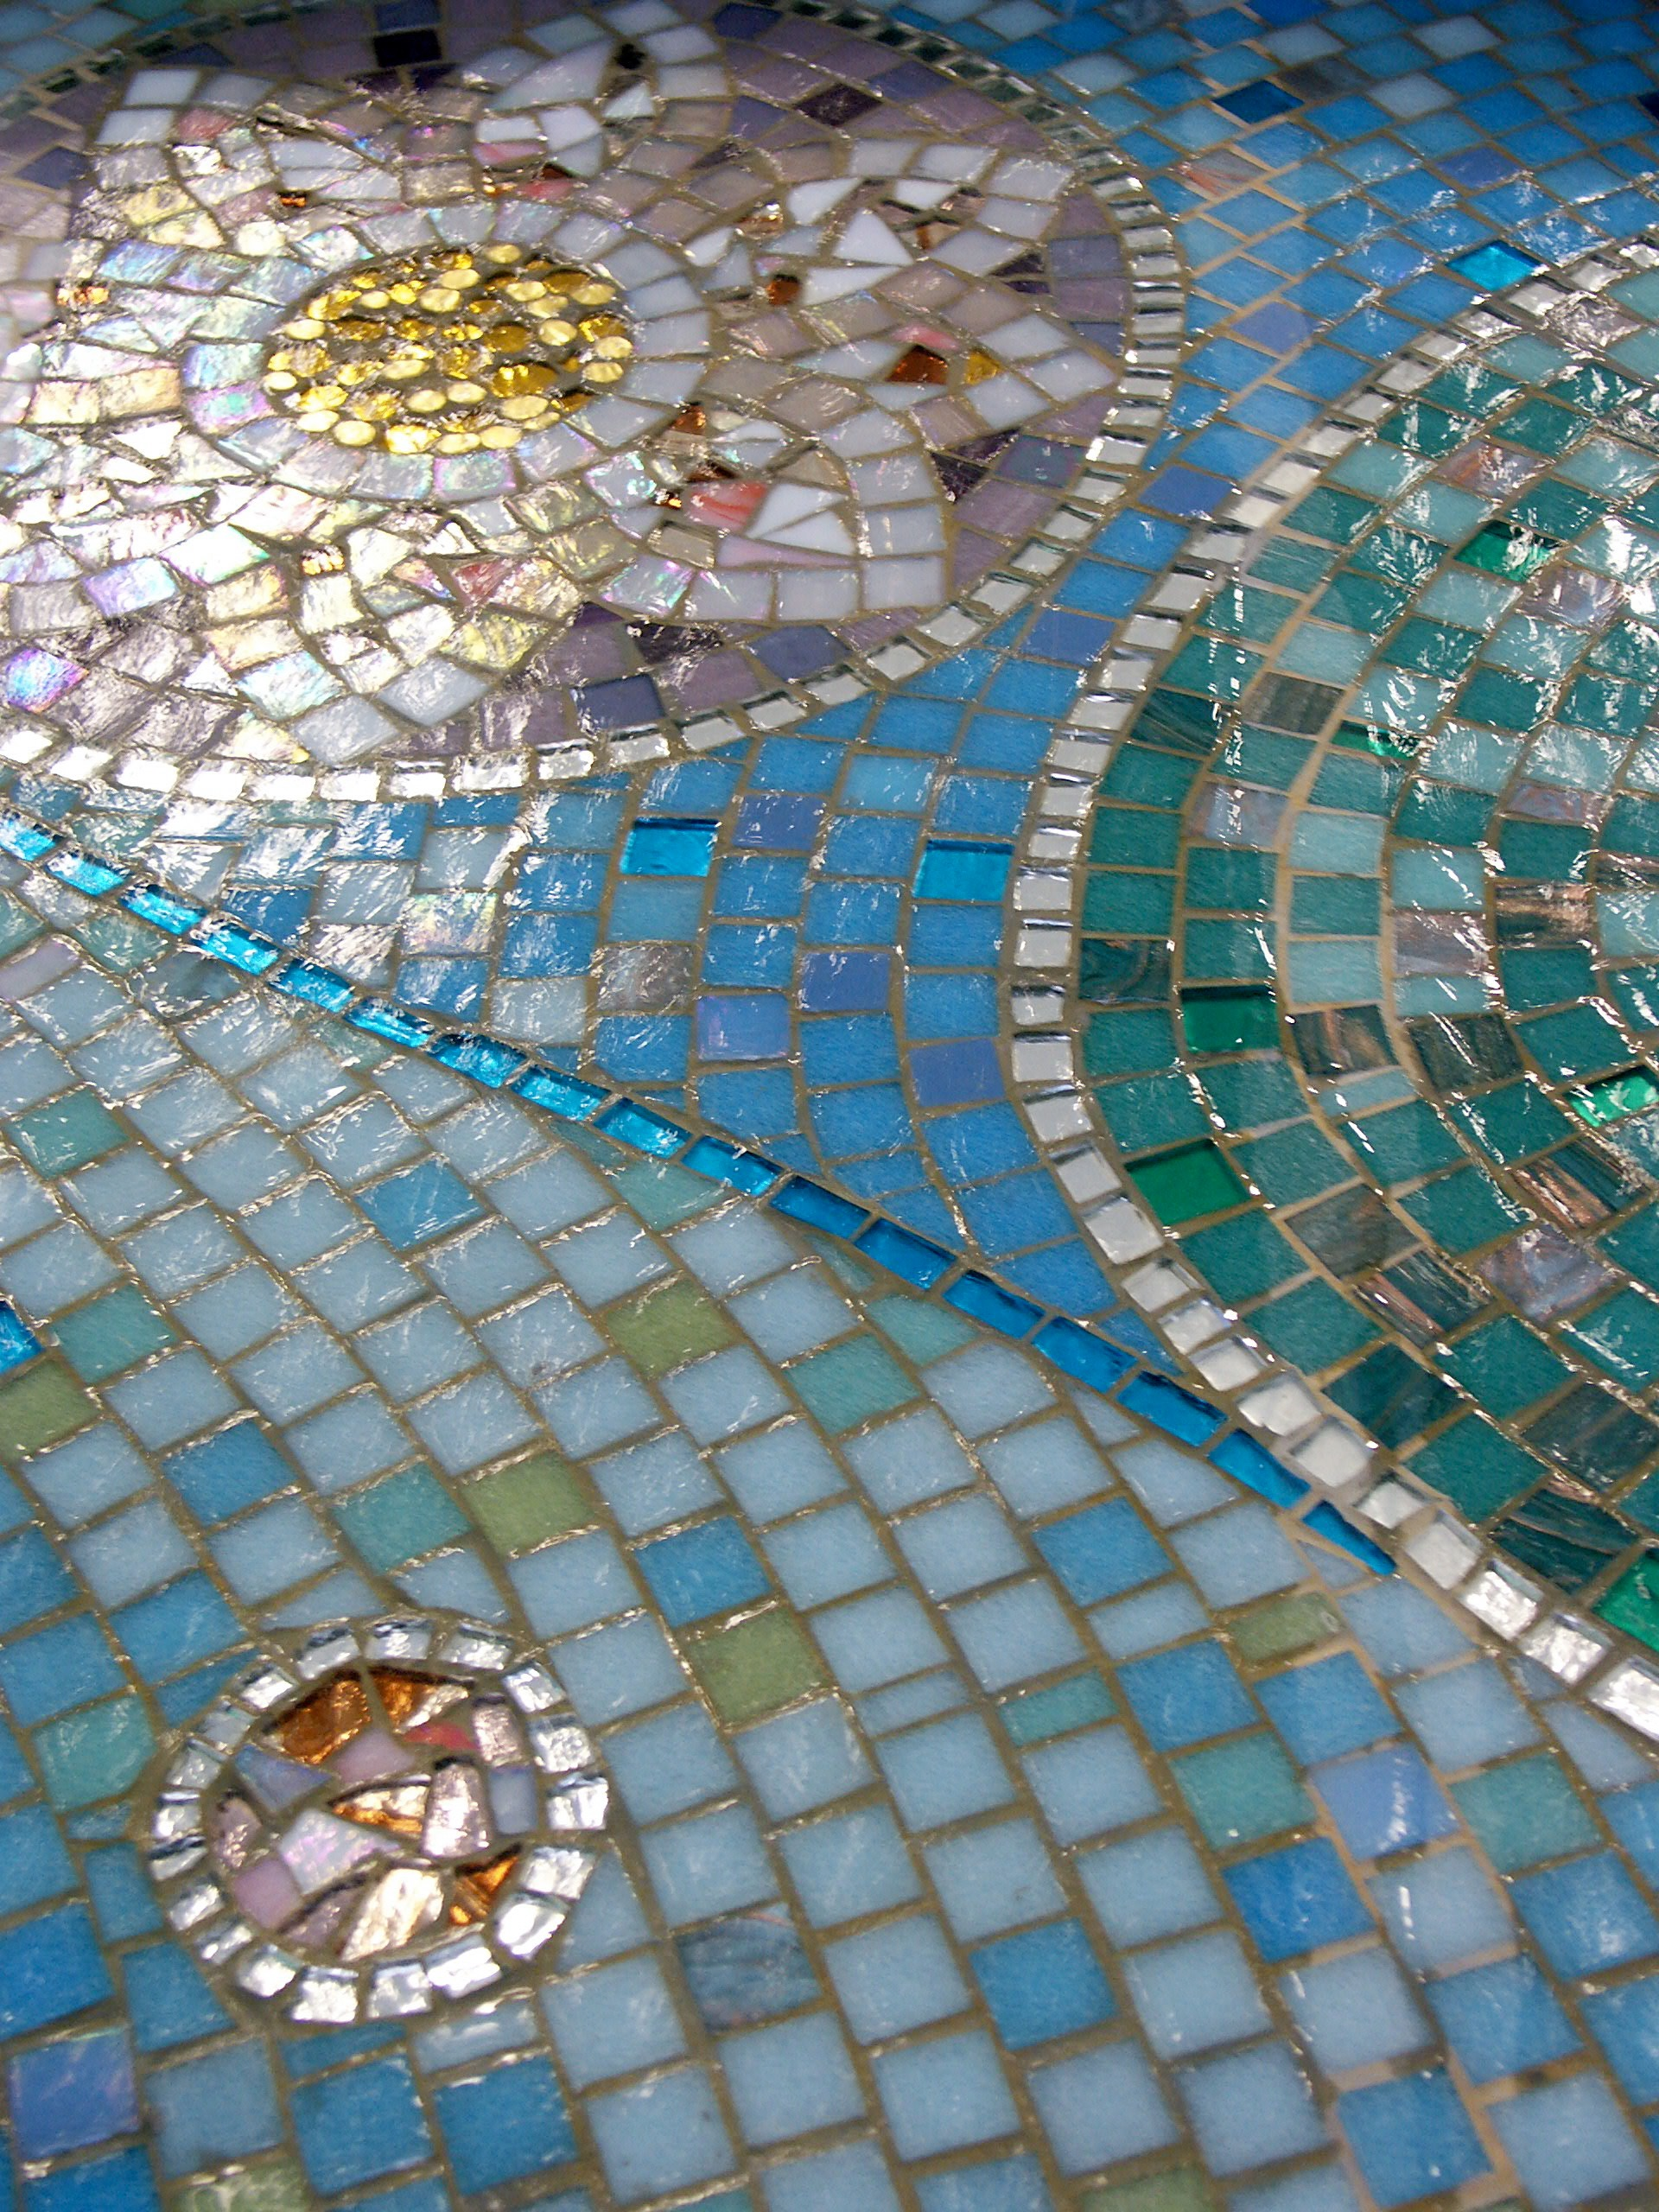 Mosaic waterfeatures.